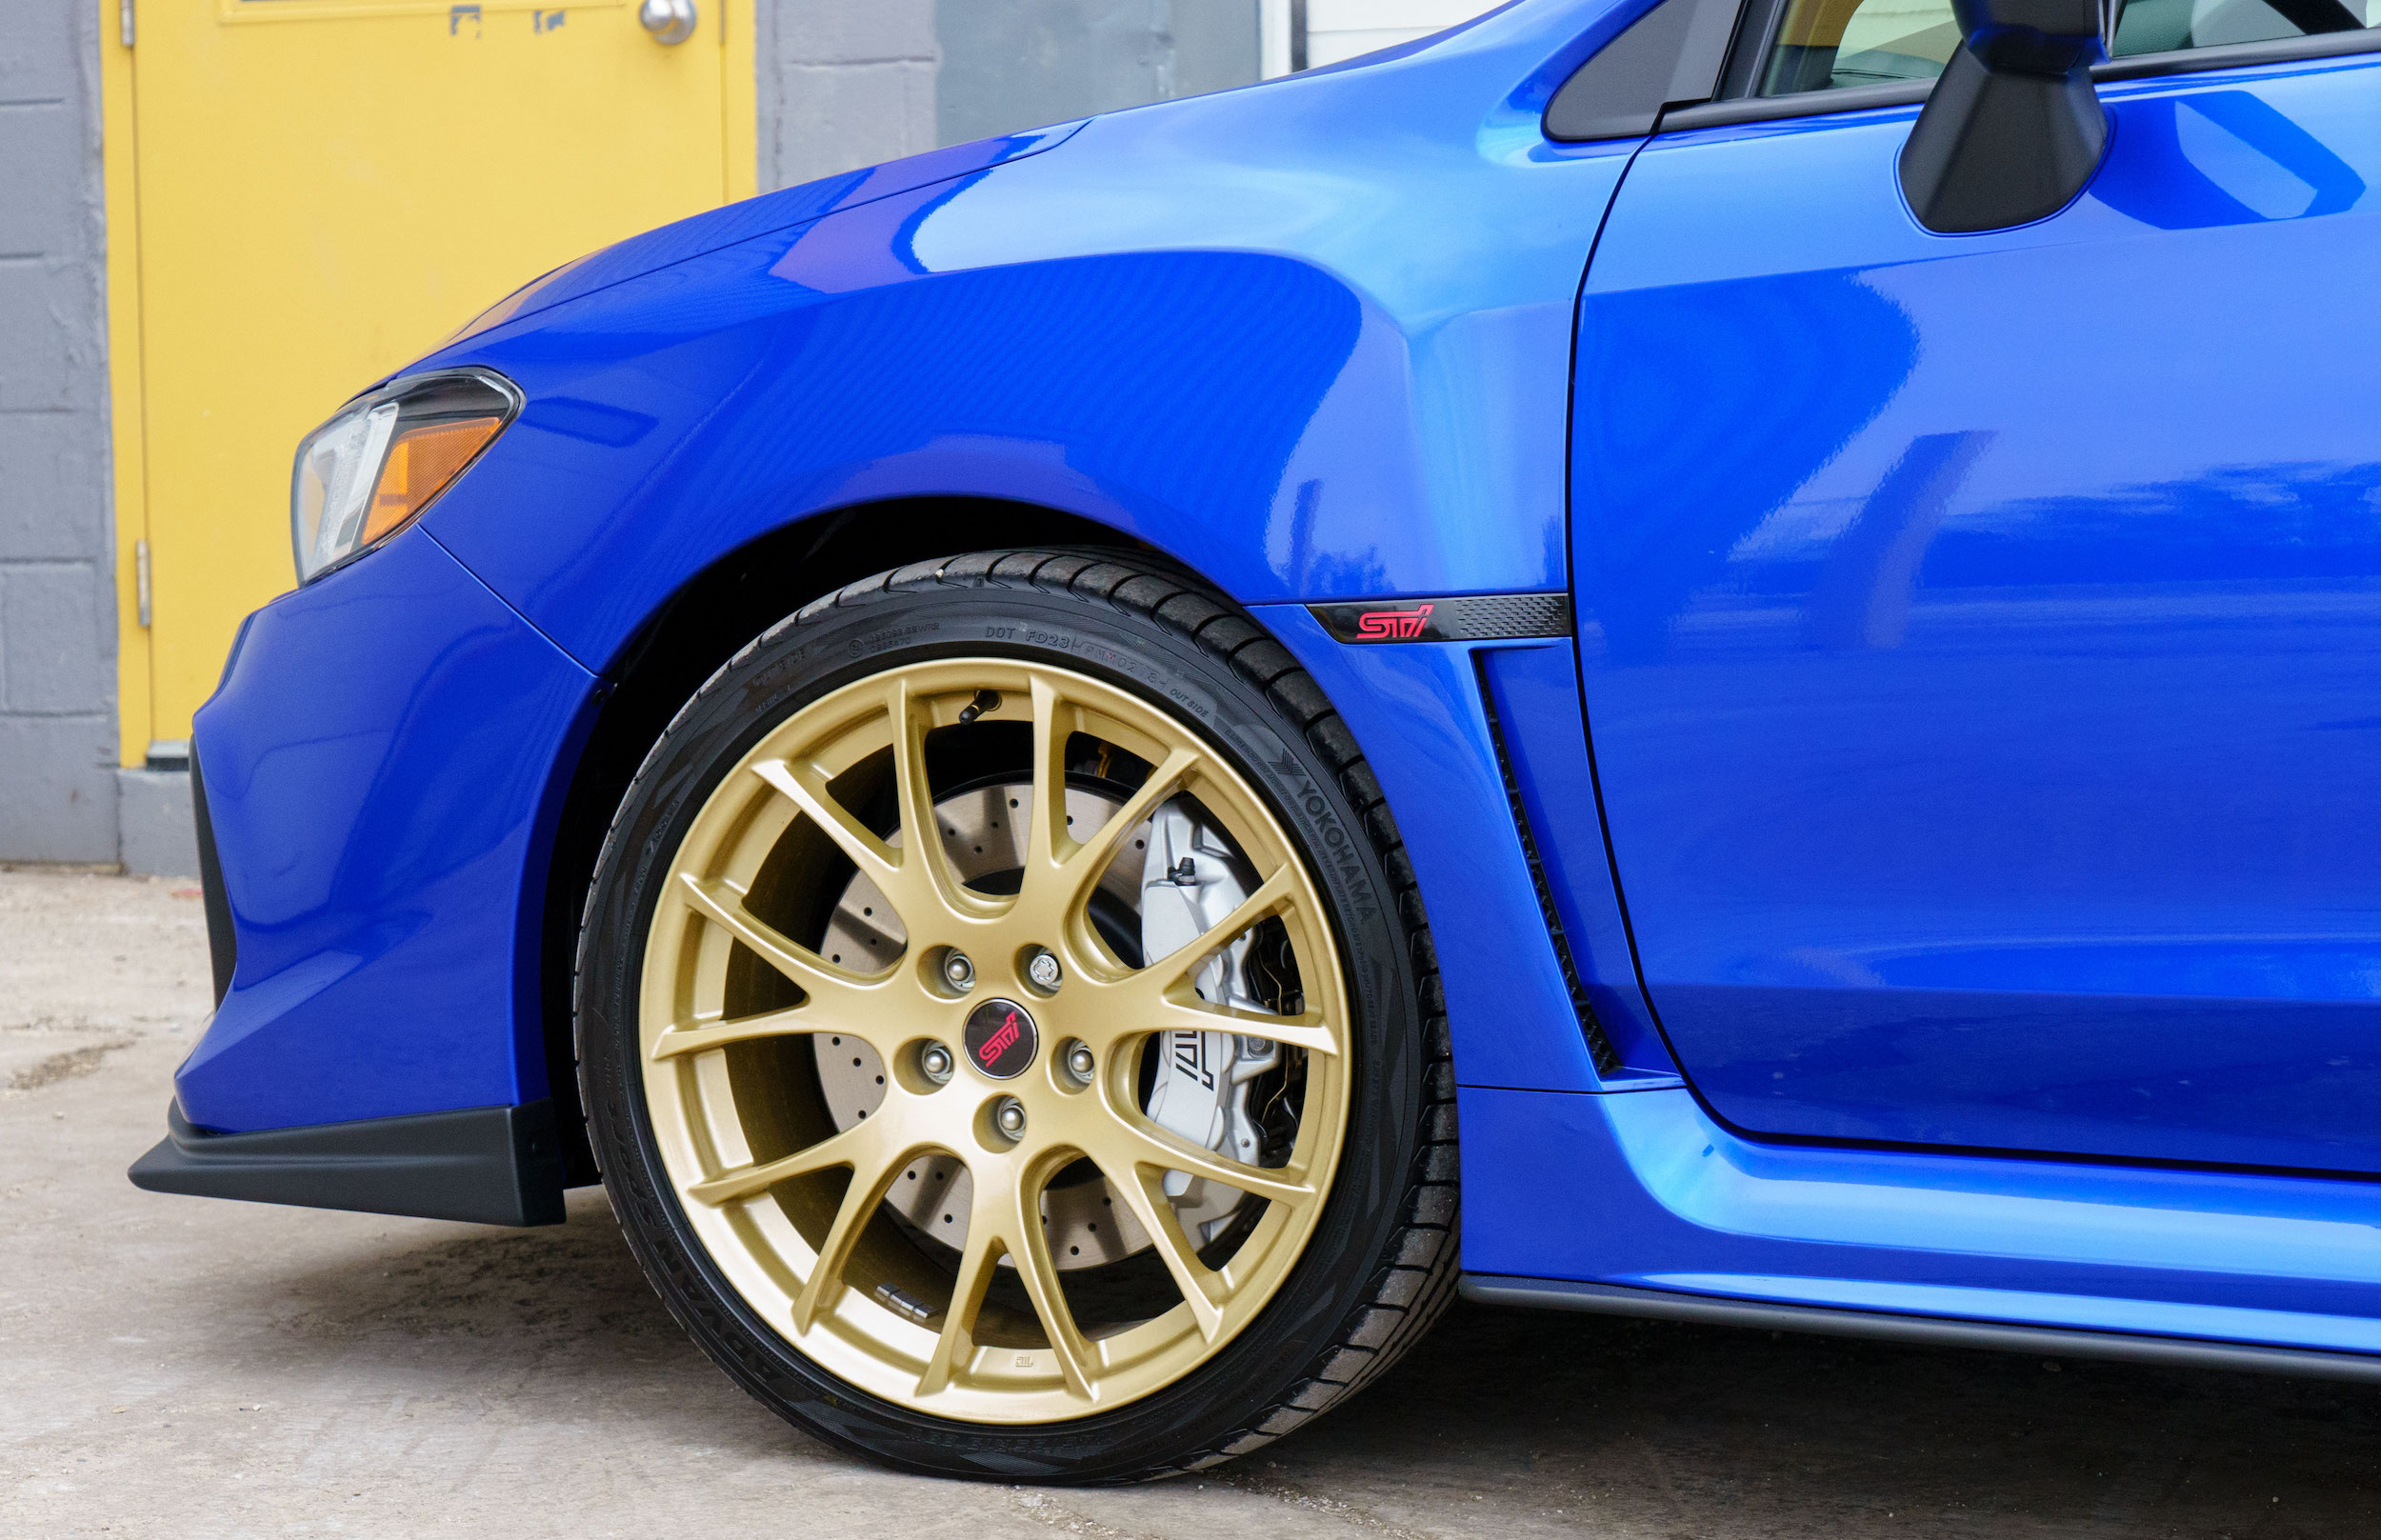 Subaru STi Type-RA at Limitless Motorsports in Mississauga